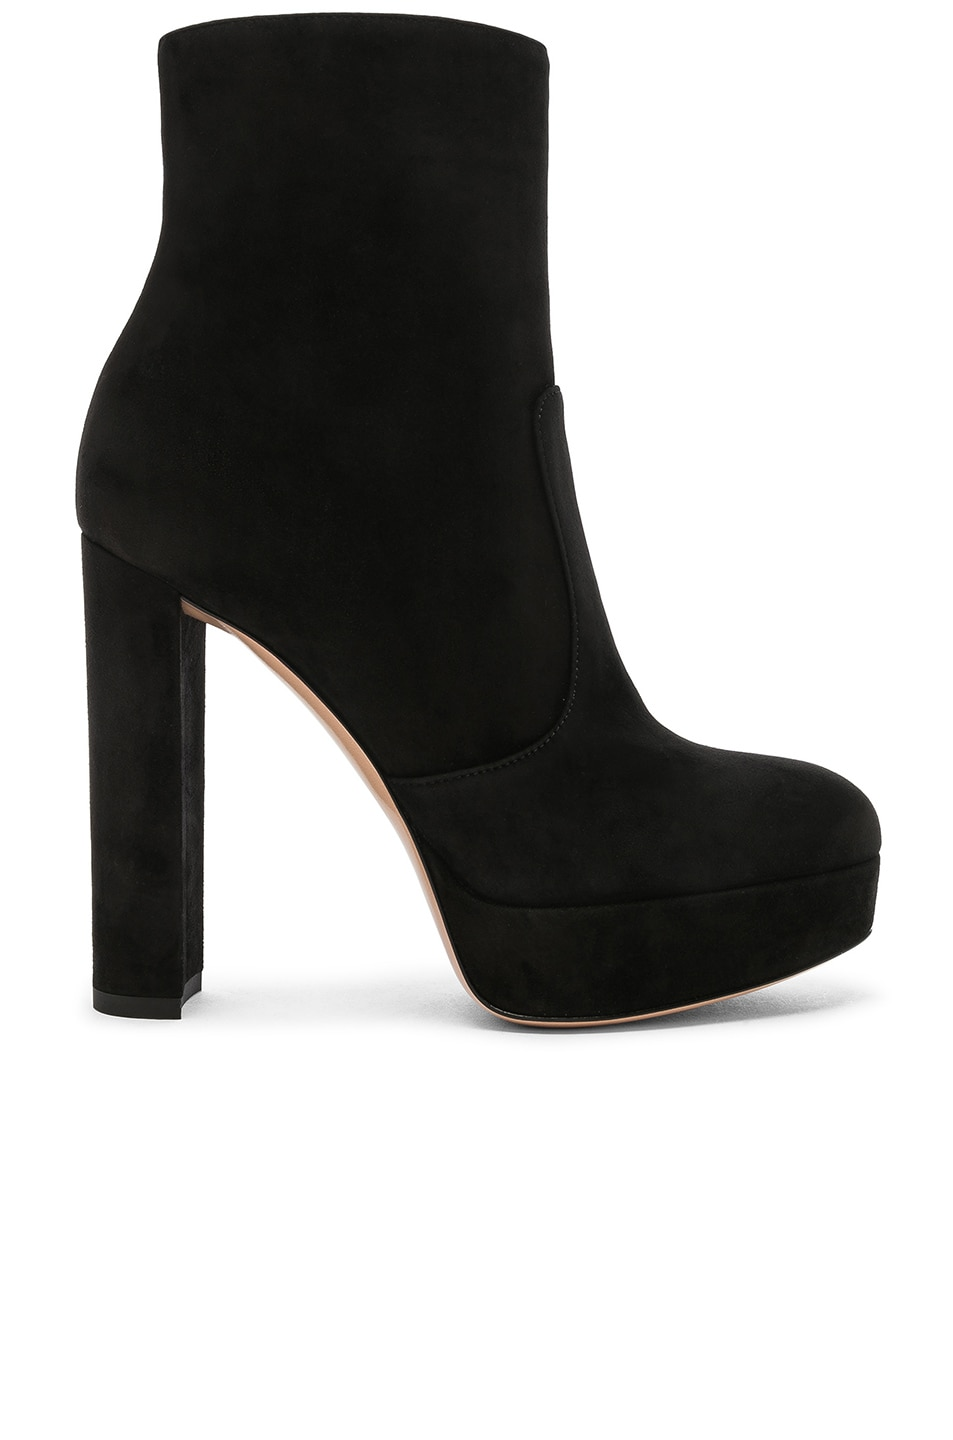 Image 1 of Gianvito Rossi Suede Brook Platform Ankle Boots in Black